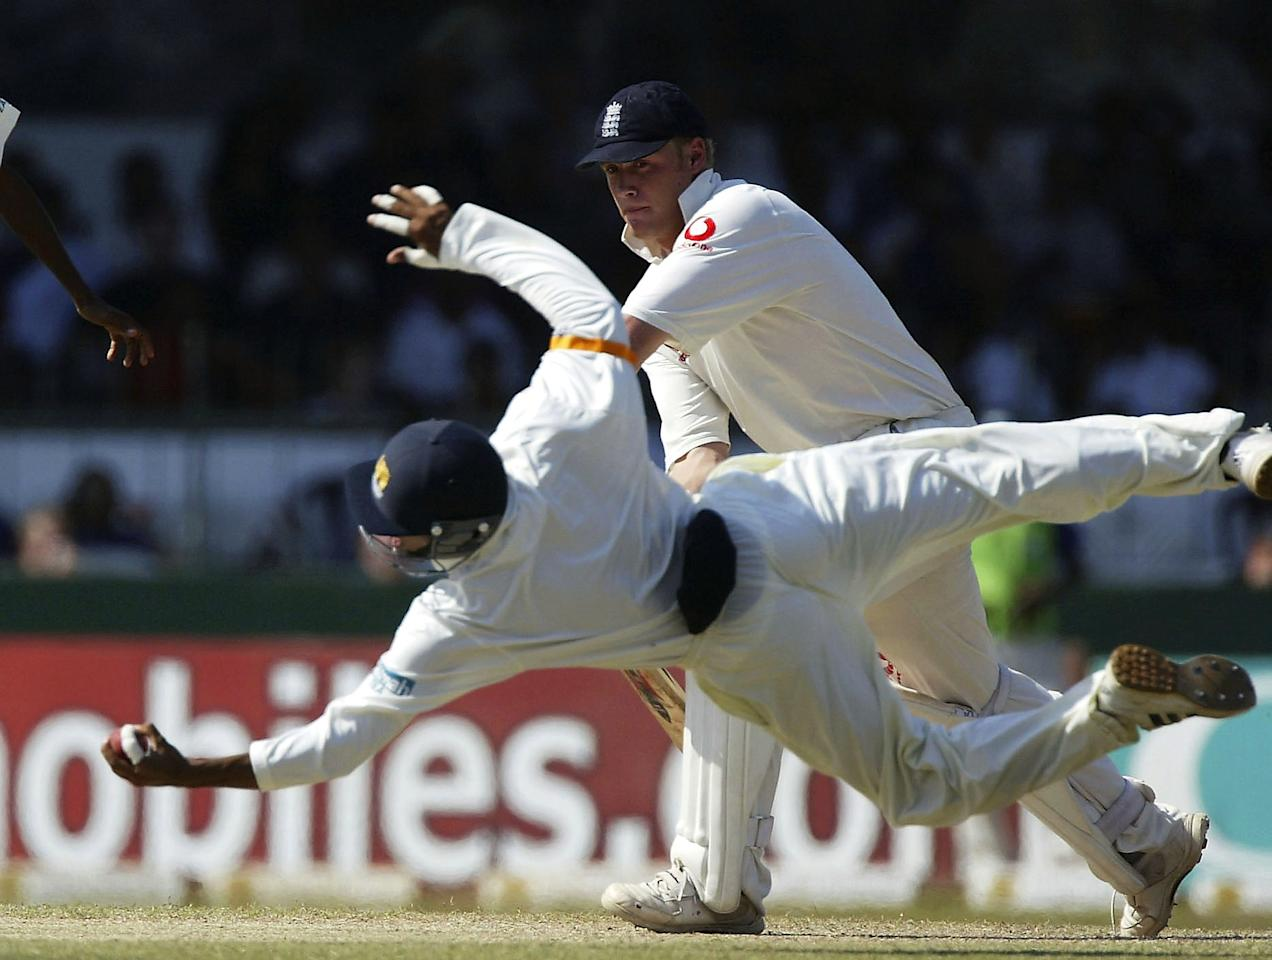 COLOMBO, SRI LANKA - DECEMBER 21:  Tillakaratne Dilshan of Sri Lanka makes a flying catch off Andrew Flintoff of England during the fourth day of the Third Test between Sri Lanka and England the Singhalese Sports Club, on December 21 2003, in Colombo, Sri Lanka. (Photo by Tom Shaw/Getty Images)